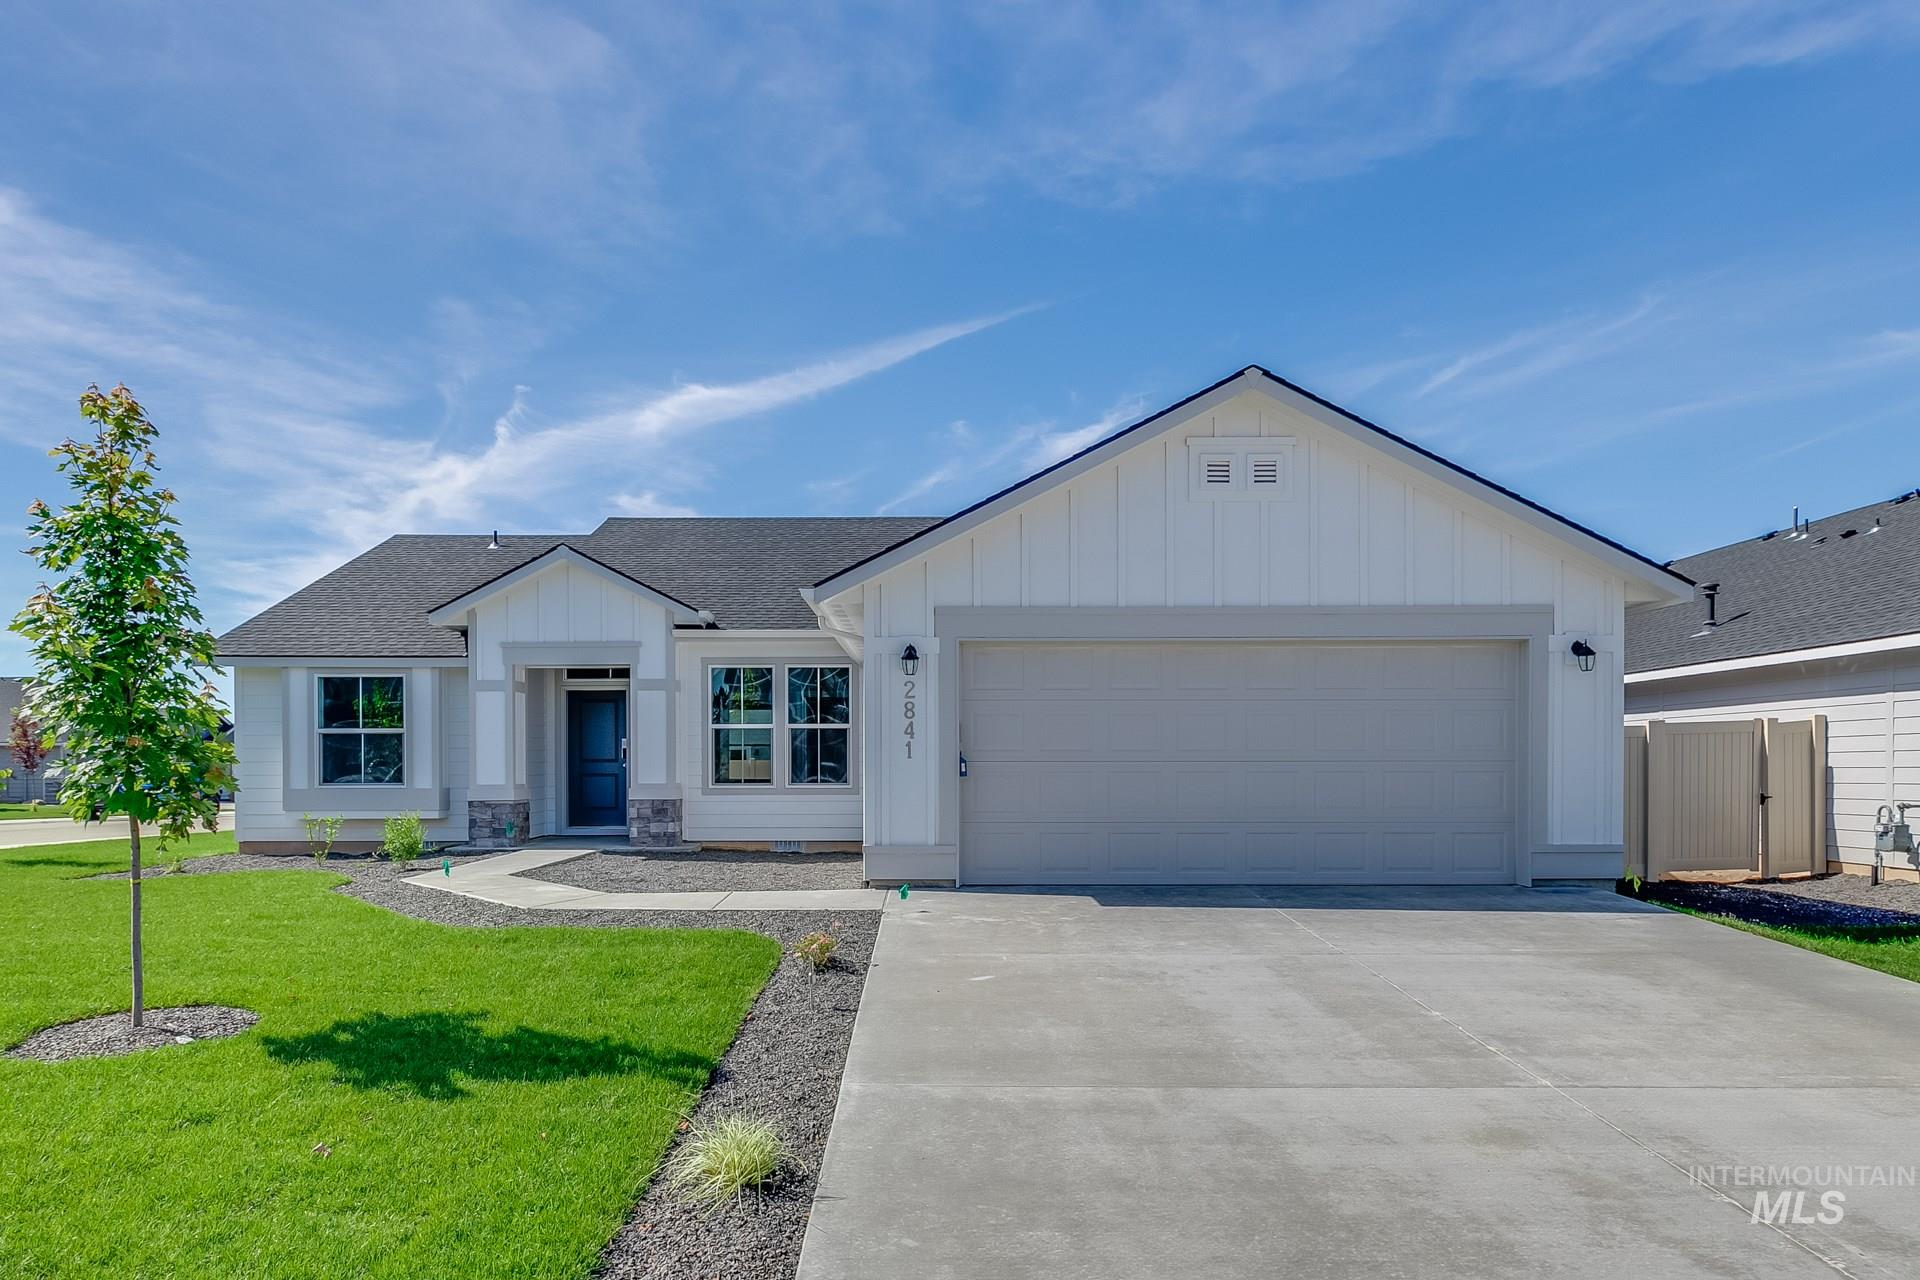 Want to tour this home NOW? Get on-demand access with TOUR NOW. Simply visit the home, follow the directions to access, and tour instantly. Get $15k with our Buy Now, Get More Promo NOW thru 7/31. Enjoy the benefits of a single-level, split-bedroom floor plan in the Kincaid 1600. With a large living room with airy 9' ceilings, breakfast nook, and functional kitchen this home has it all! Price includes dual vanity, upgraded cabinets, engineered vinyl plank flooring, and more. RCE-923.